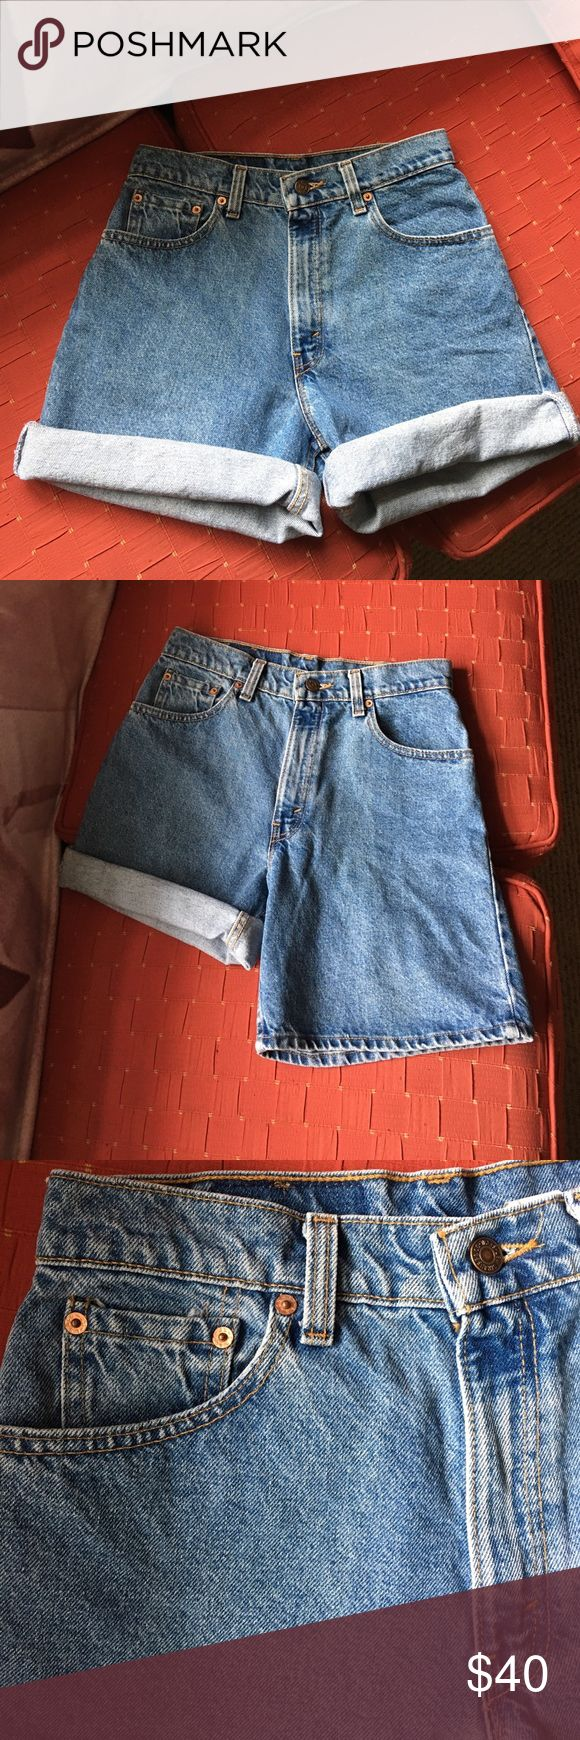 Vintage Levis 550 High Waisted Denim Shorts Excellent like-new condition!! Levi's 550 relaxed fit high waisted Denim shorts. They read as a size 9, but I'll upload measurements later. Amazing condition would keep for myself if they were the right size! Levi's Shorts Jean Shorts